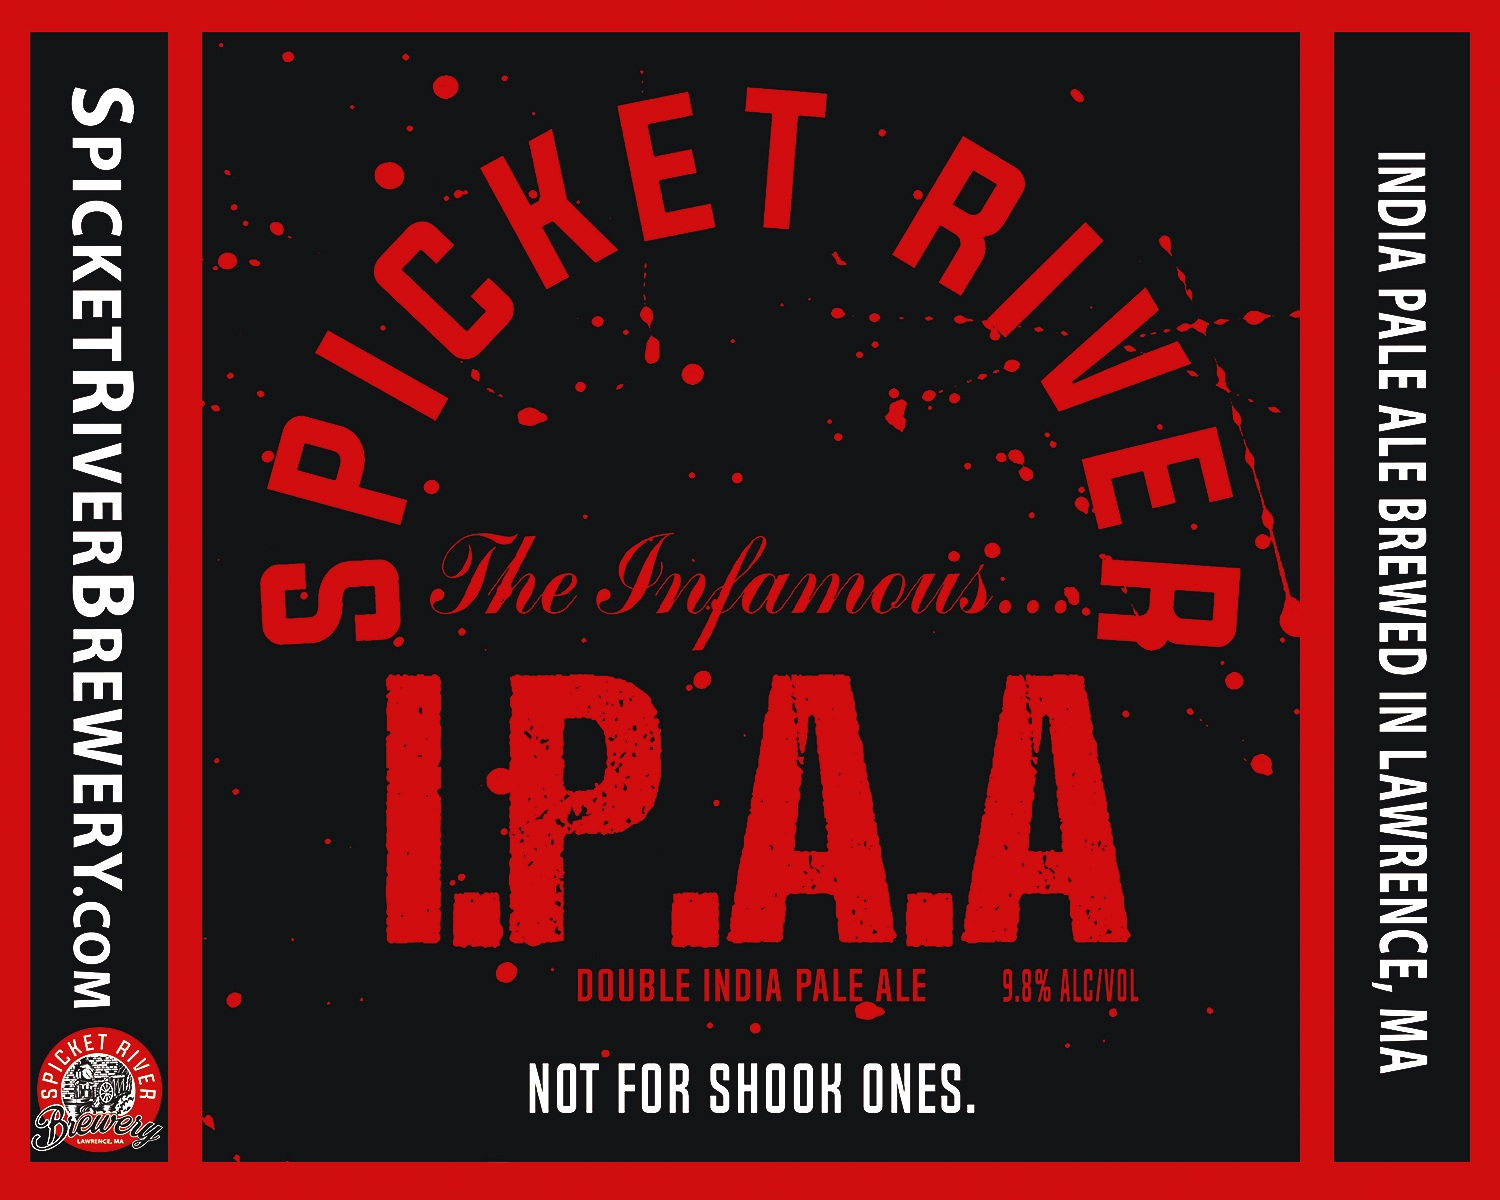 Infamous i.p.a.a. - Double IPA(A) (10% abv)Heady, heavy yet deceptively smooth, Infamous IPAA is a not soft but sweet, lift you off your feet style Double IPA(A). Packing heat with Citra and Denali hops, Infamous IPAA is definitely not for shook ones